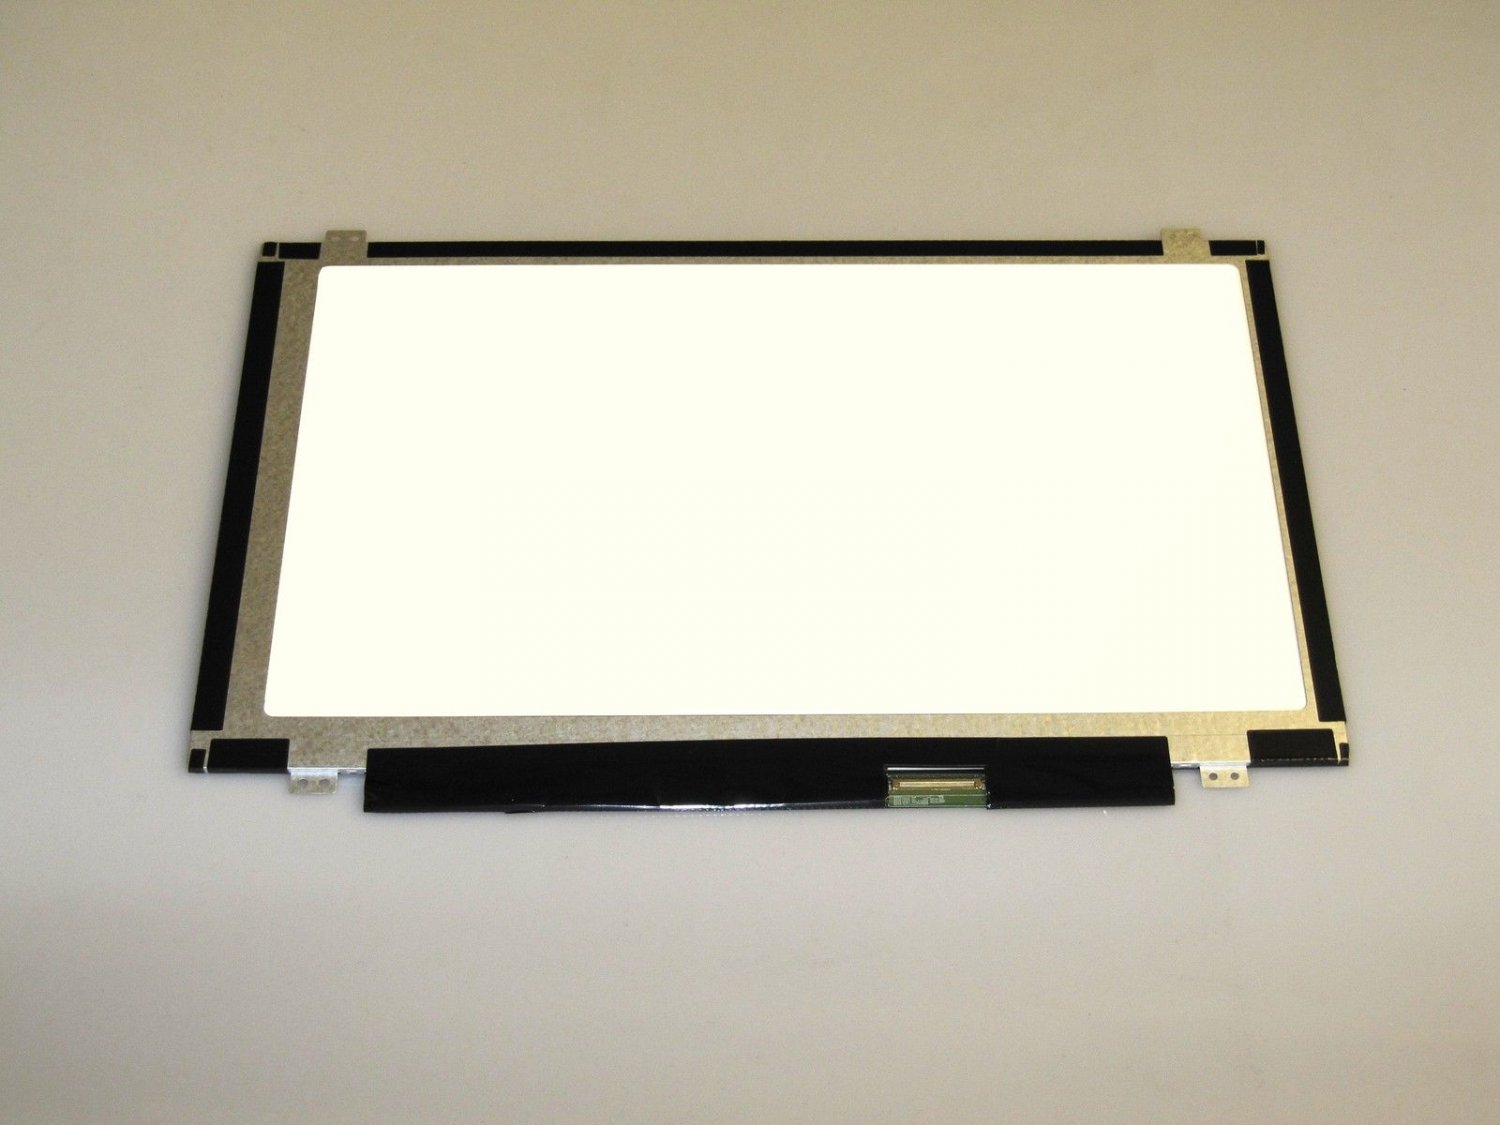 "Laptop LCD Screen For Acer Aspire V5-471 14.0"" Wxga Hd (Non Touch)"